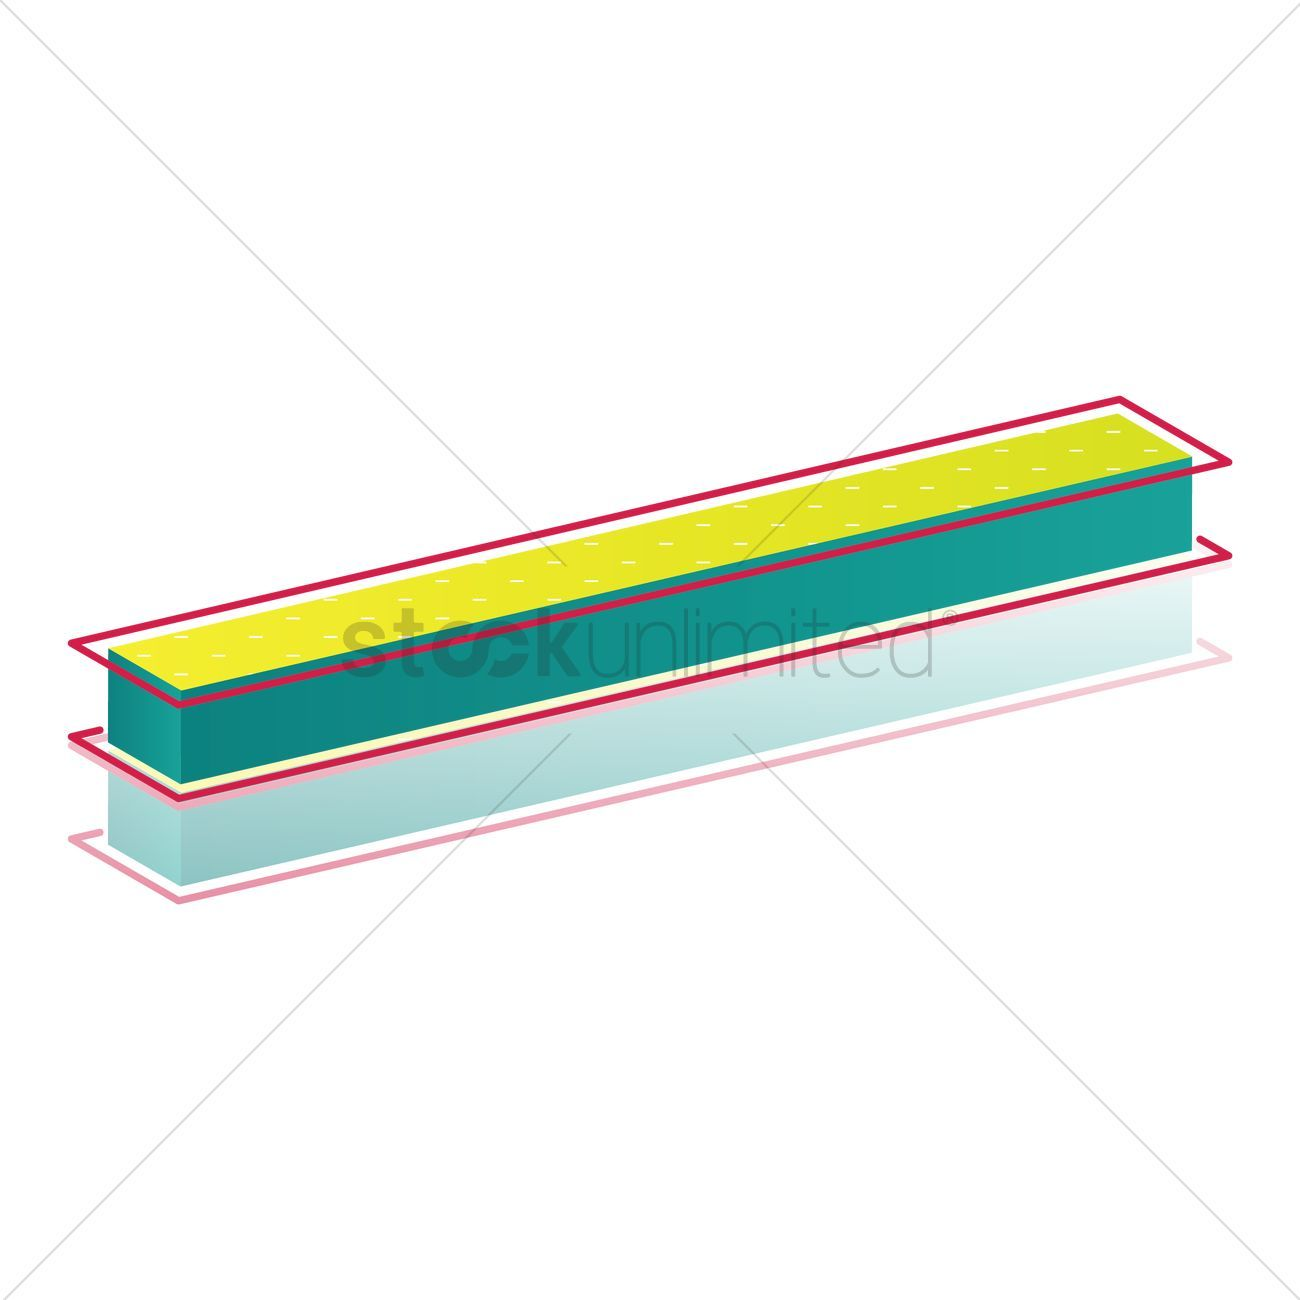 You Don't Have To Be A Designer To Get Awesome Visuals 3d fraction bar symbol vectors, stock clipart ,